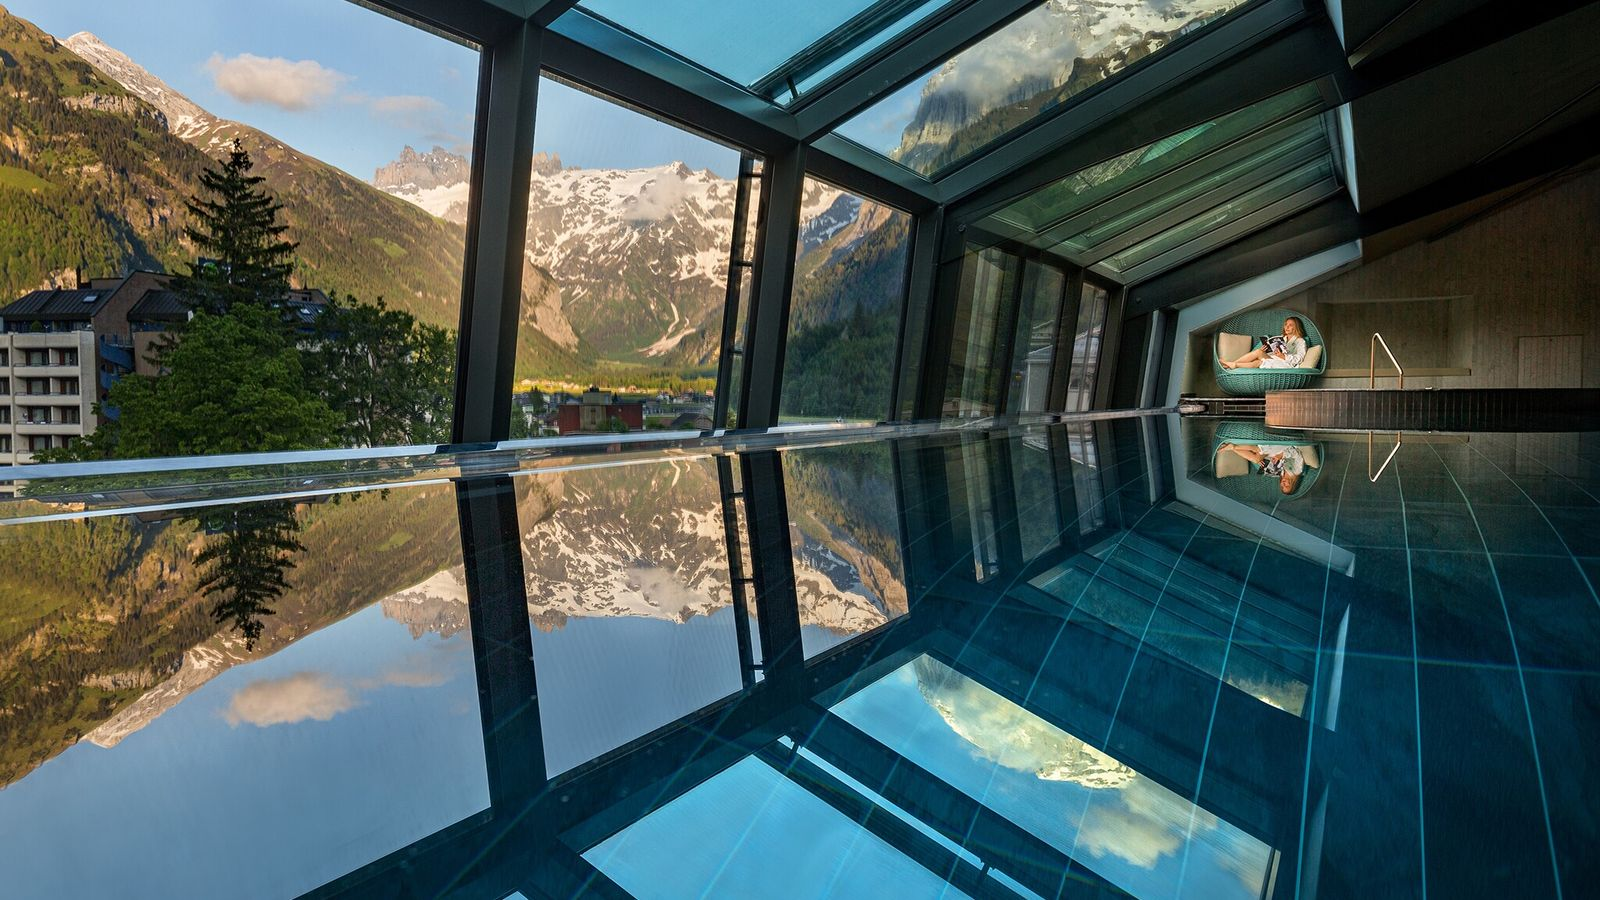 The infinity pool at the Kempinski Palace Engelberg is particularly breathtking.